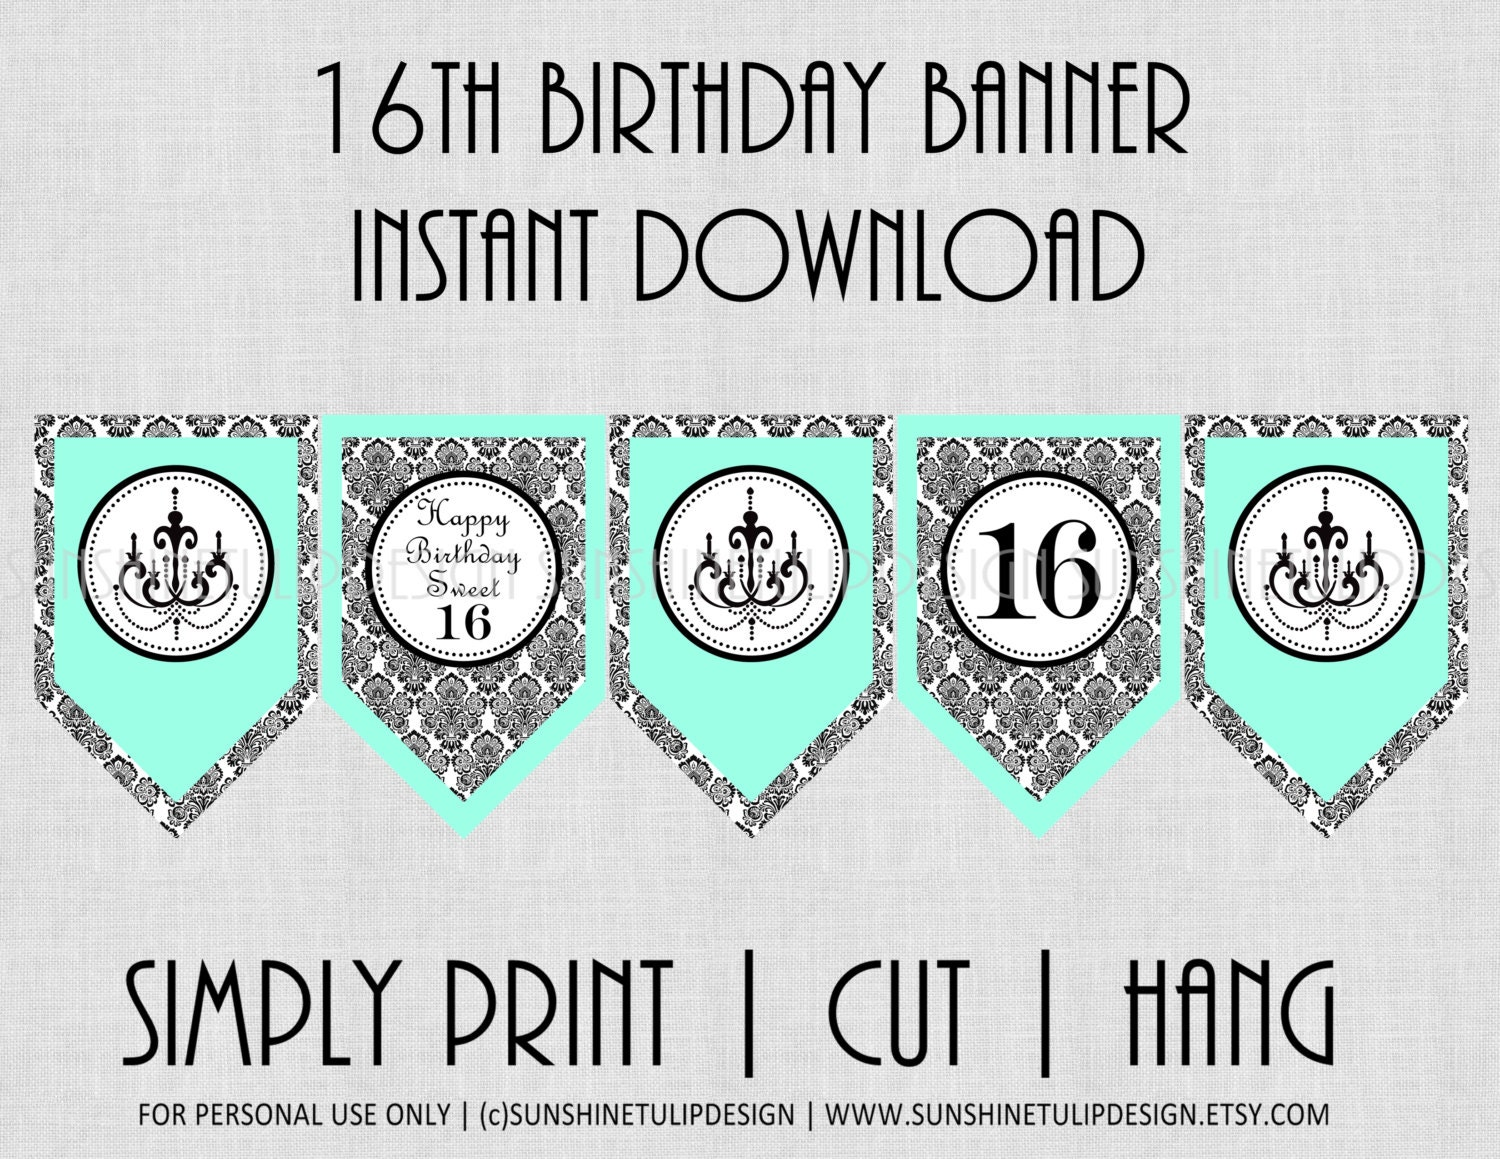 printable 16th birthday banner printable sweet 16 banner. Black Bedroom Furniture Sets. Home Design Ideas